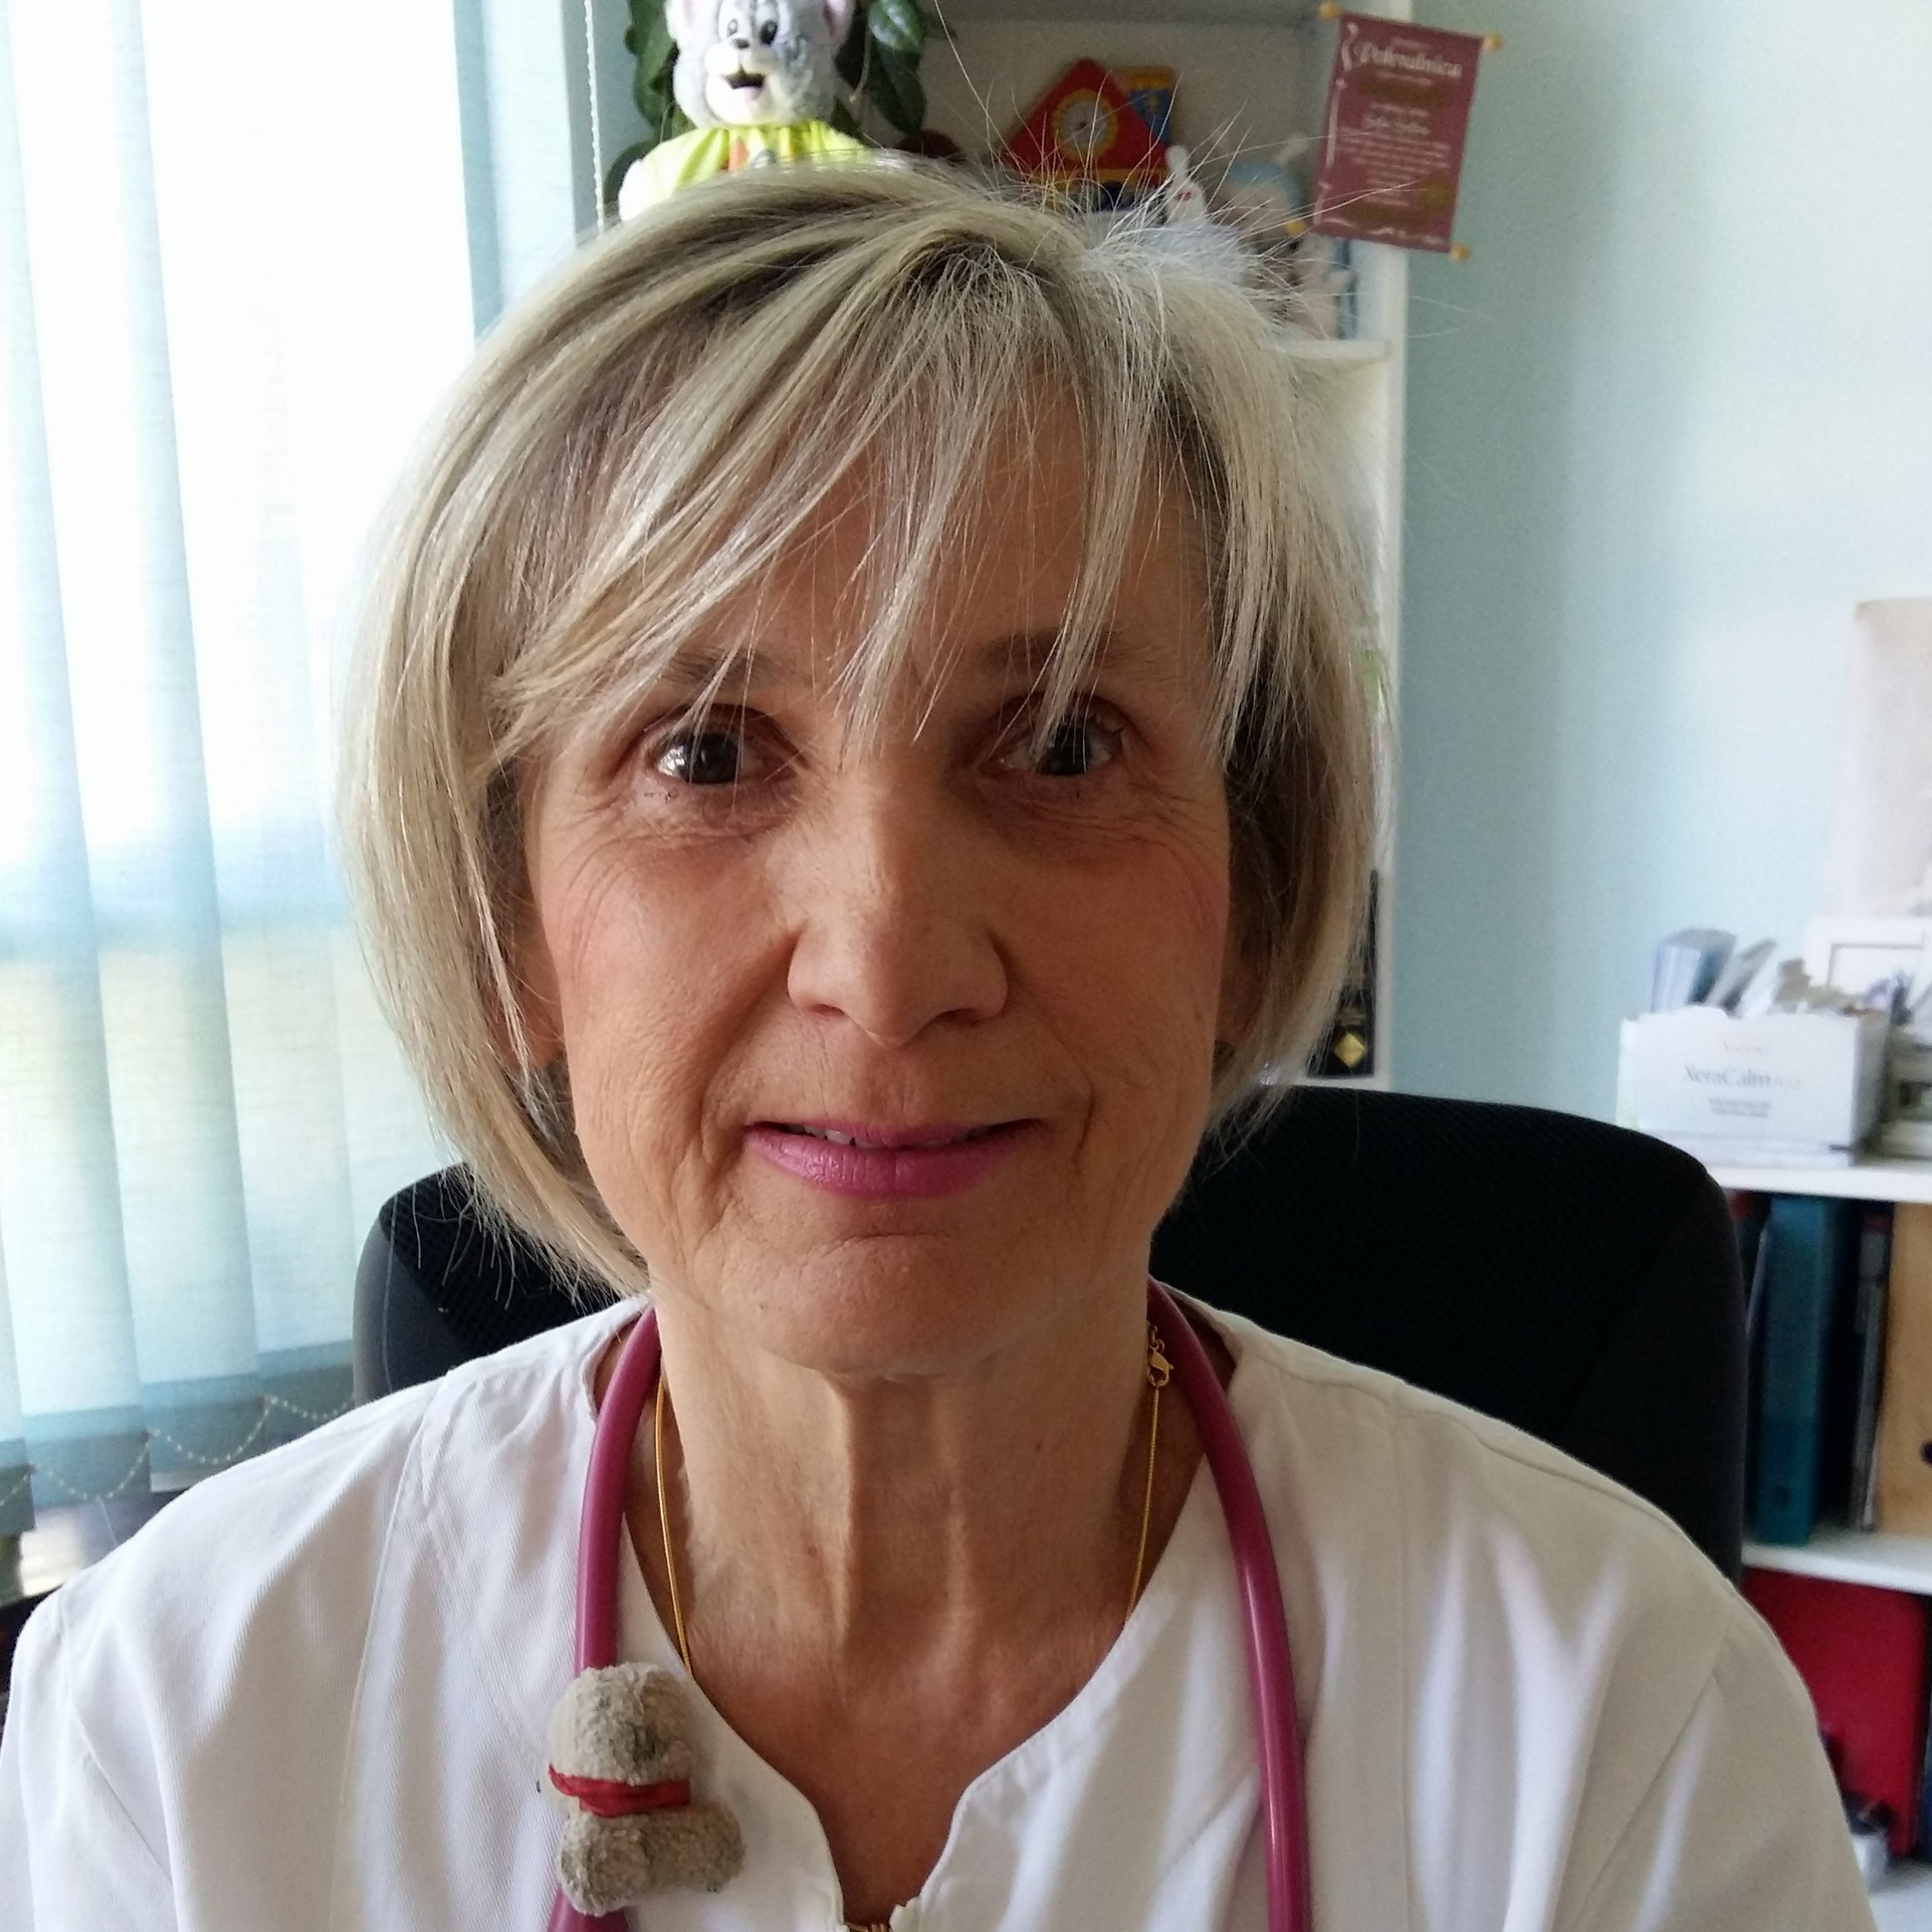 Giovana Armano, Paediatrician, Union of Society